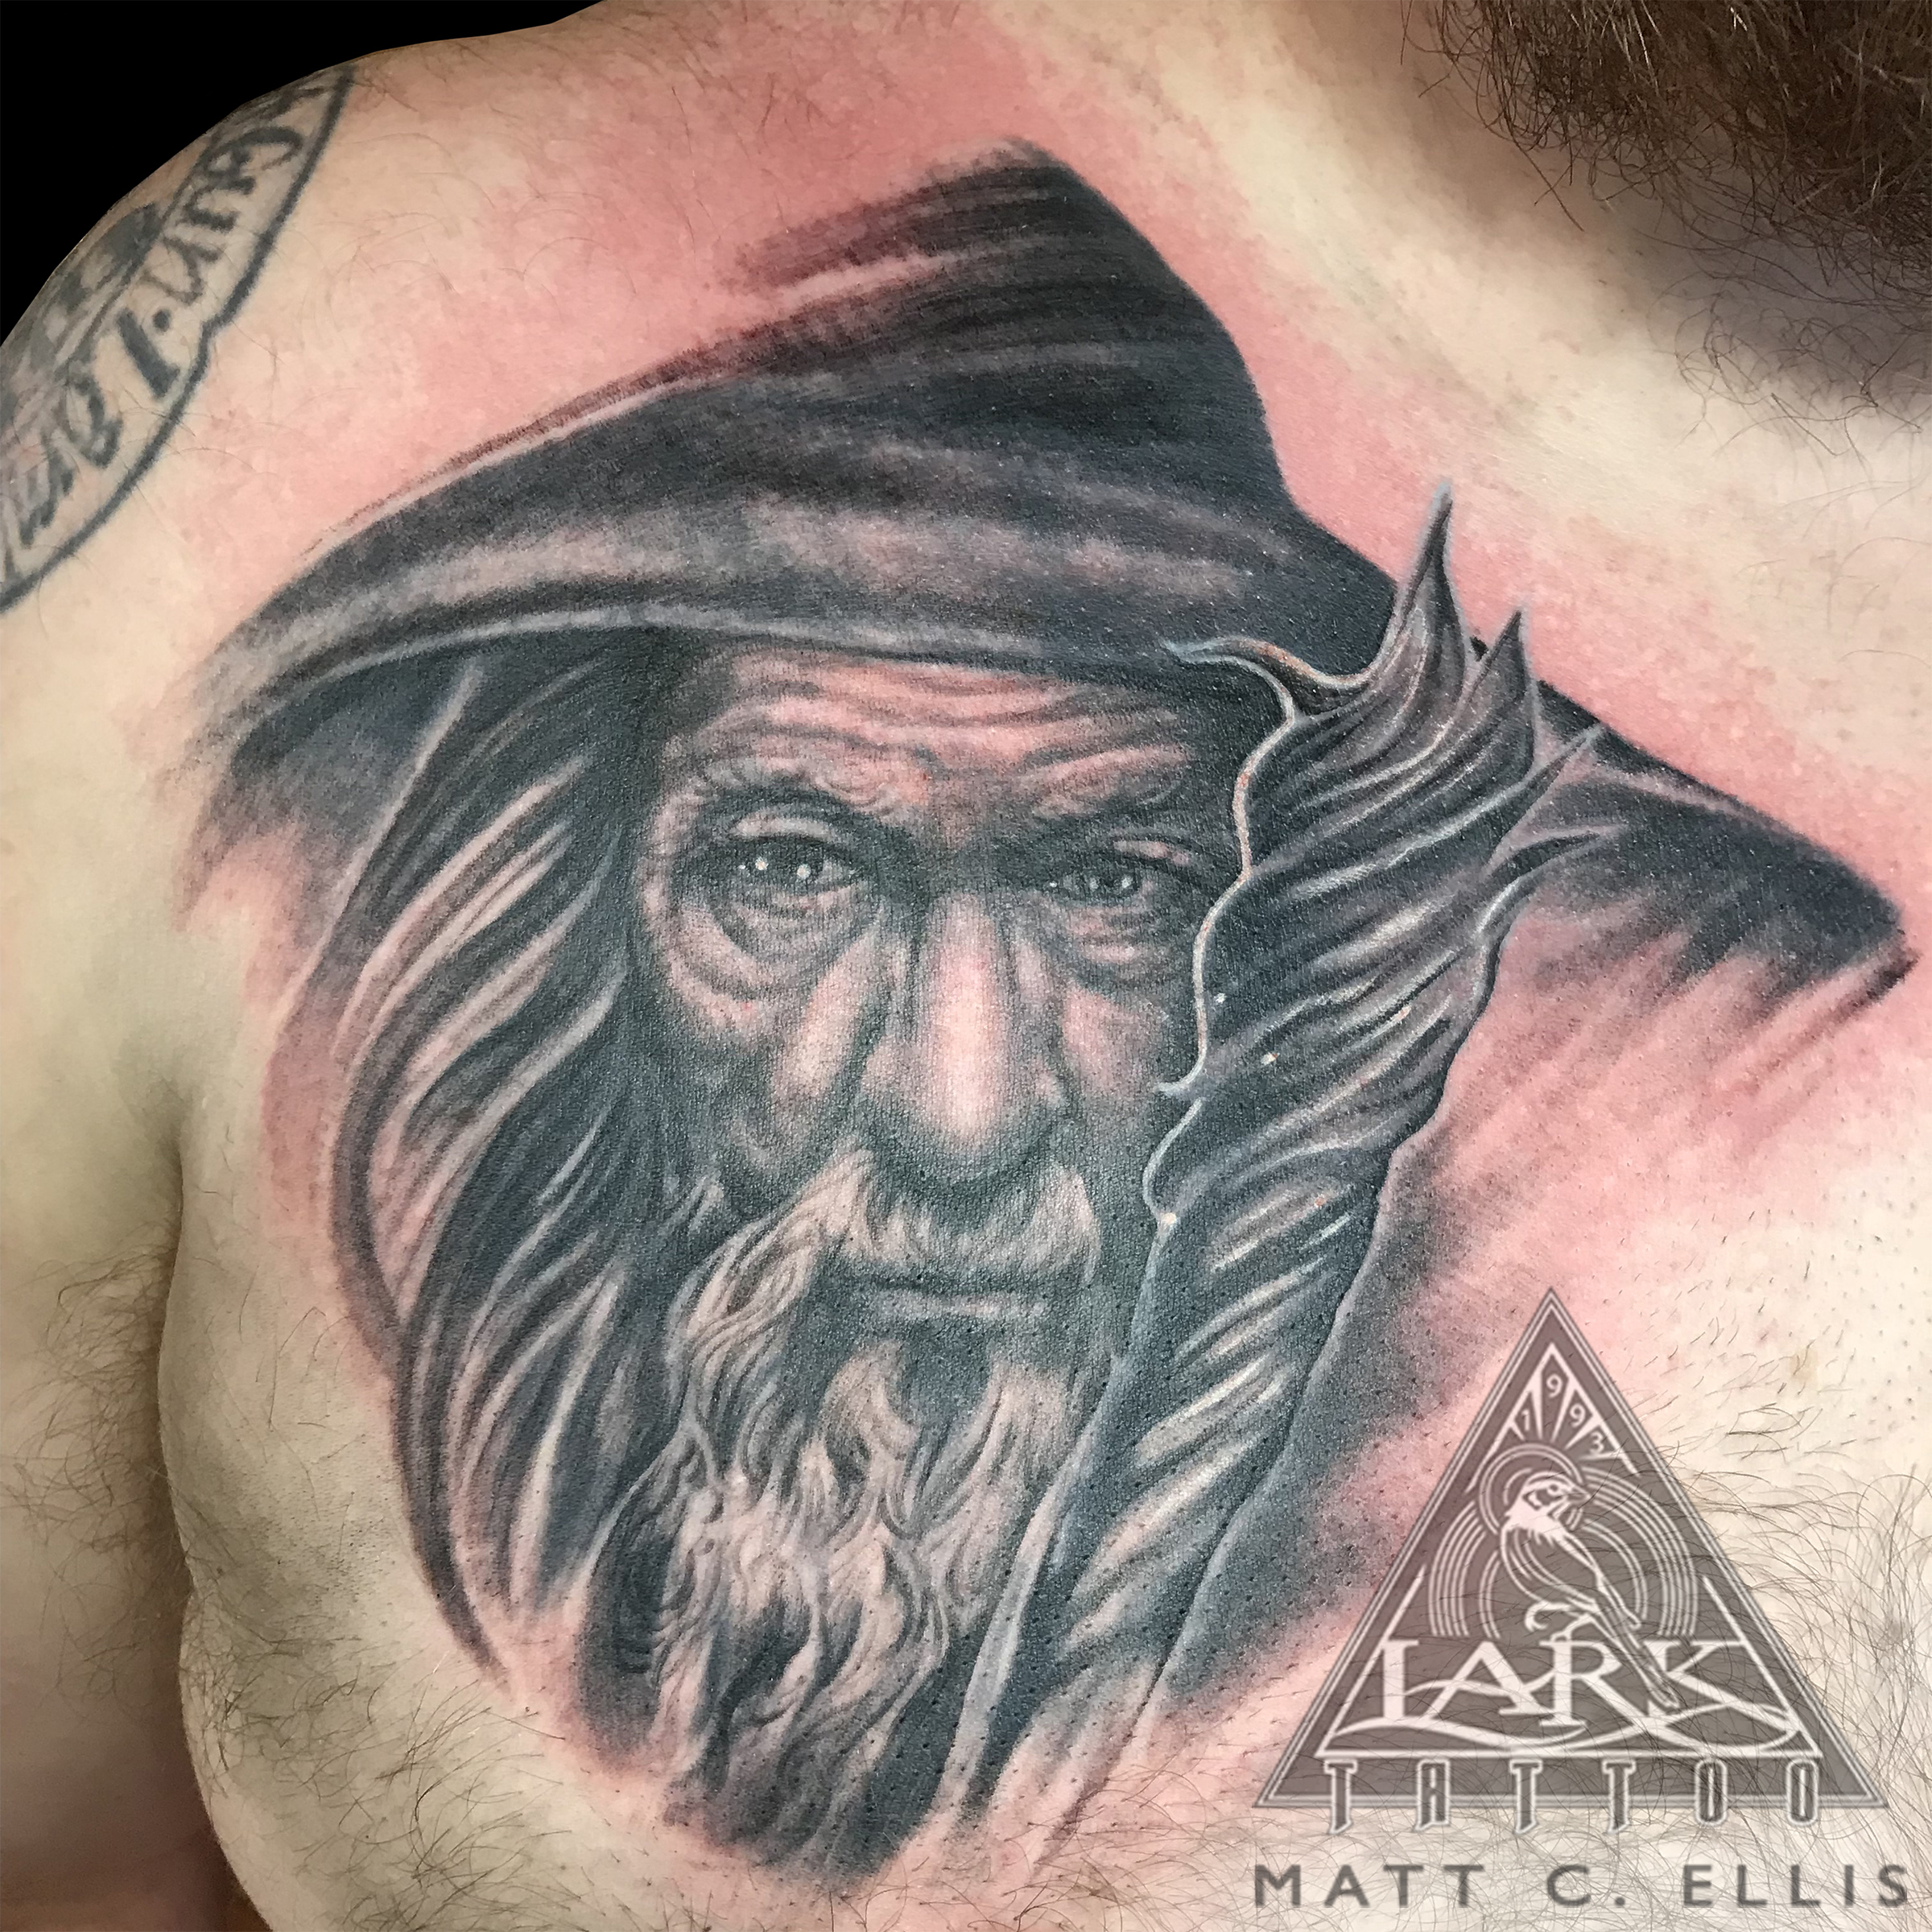 #Gandalf #GandalfTattoo #Hobbit #HobbitTattoo #TheLordOfTheRings #TheLordOfTheRingsTattoo #FellowshipOfTheRing #FellowshipOfTheRingTattoo #Wizard #WizardTattoo #Tolkien #TolkienTattoo #JRRTolkien #JRRTolkienTattoo #Tattoo #Tattoos #BNG #BNGTattoo #PortaitTattoo #Realistic #RealisticTattoo #LarkTattoo #tat #tats #tatts #tatted #tattedup #tattoist #tattooed #inked #inkedup #ink #tattoooftheday #amazingink #bodyart #tattooig #tattoosofinstagram #instatats #larktattoos #larktattoowestbury #westbury #longisland #NY #NewYork #usa #art